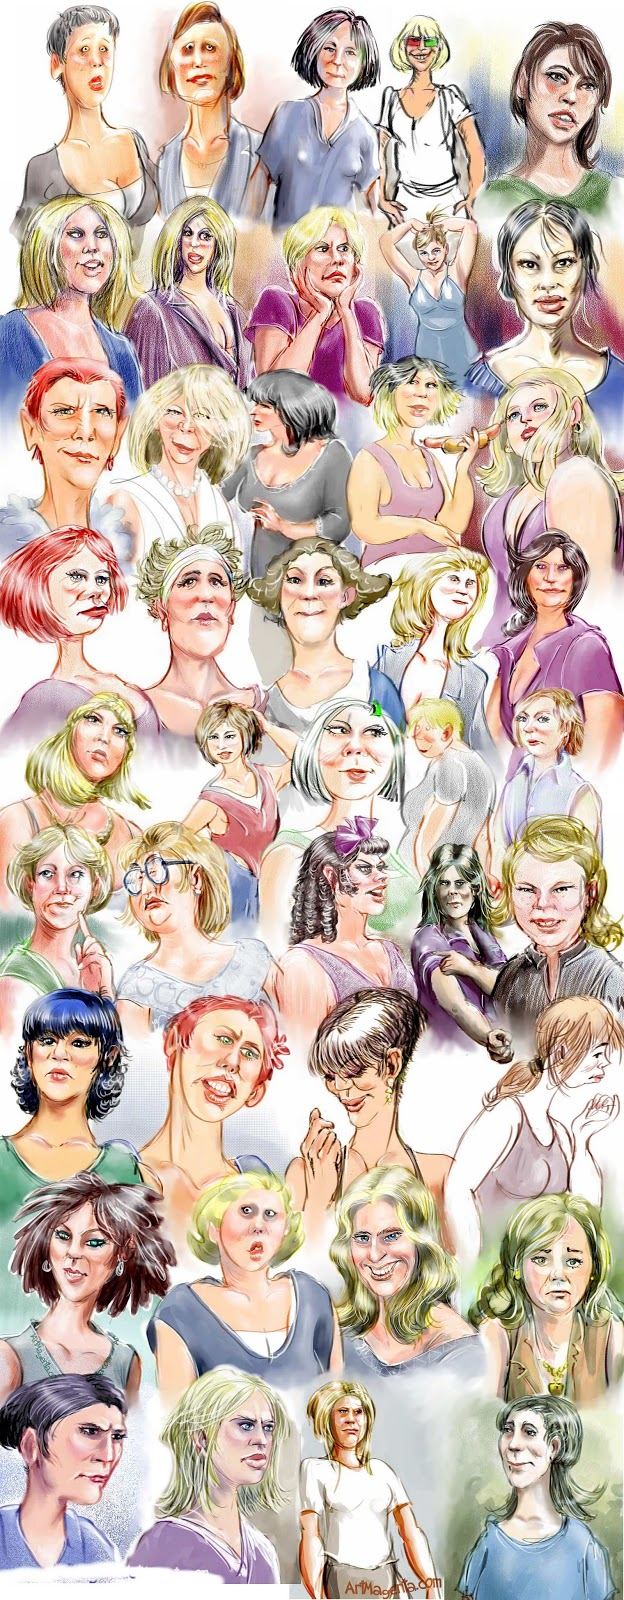 A gallery of women caricature portraits by ArtMagenta